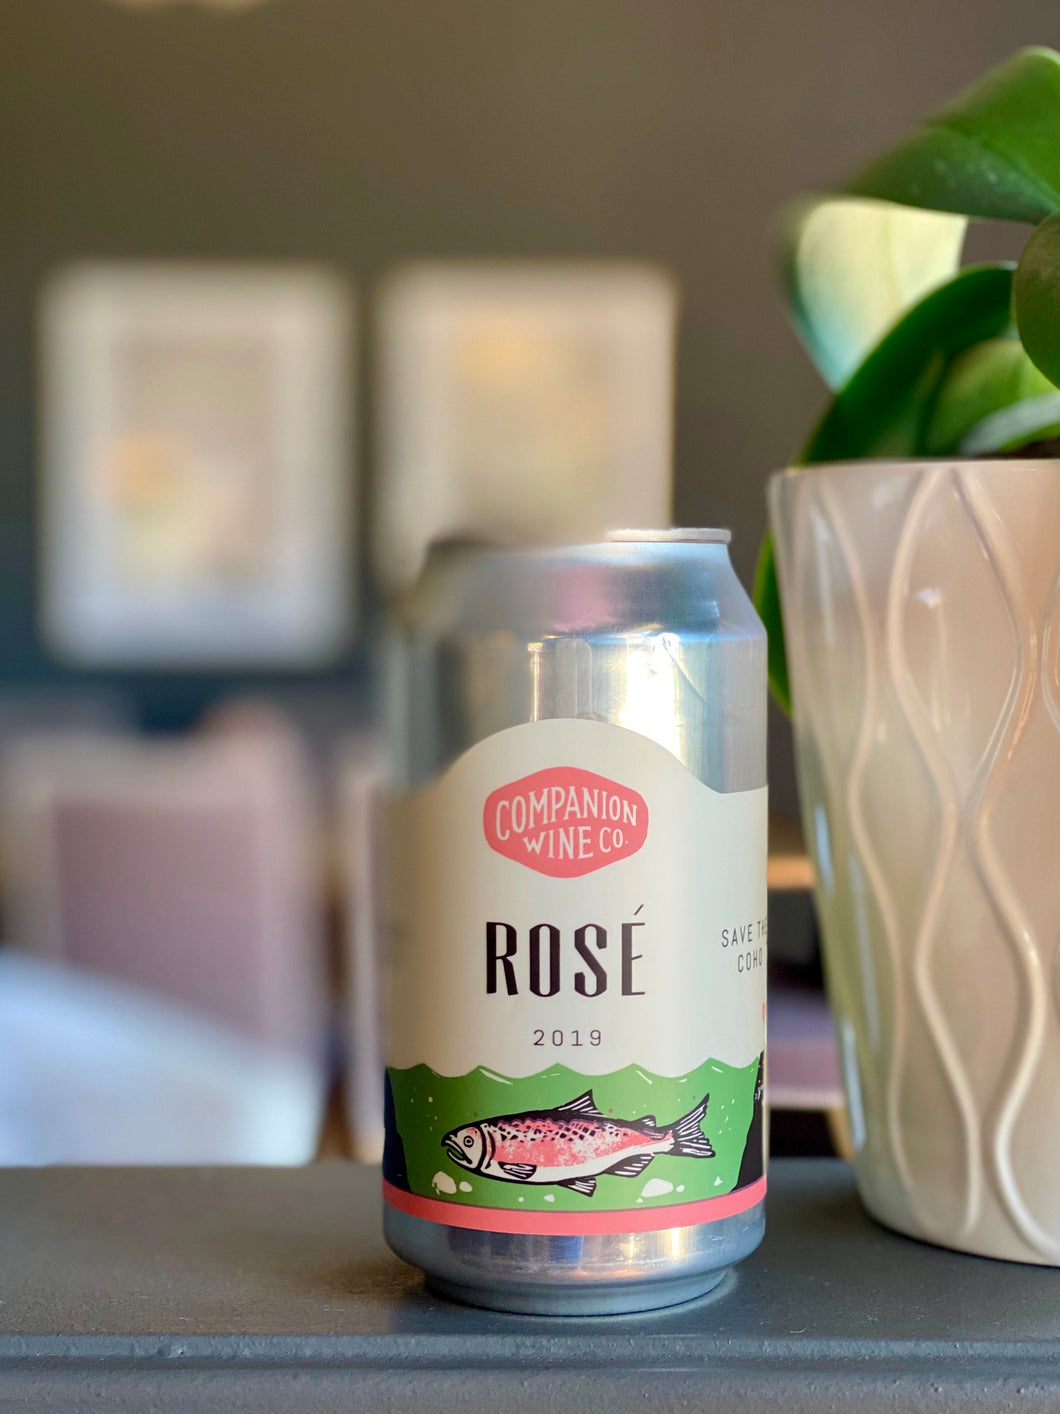 Companion Wine Co. Rosé by Ryan Stirm